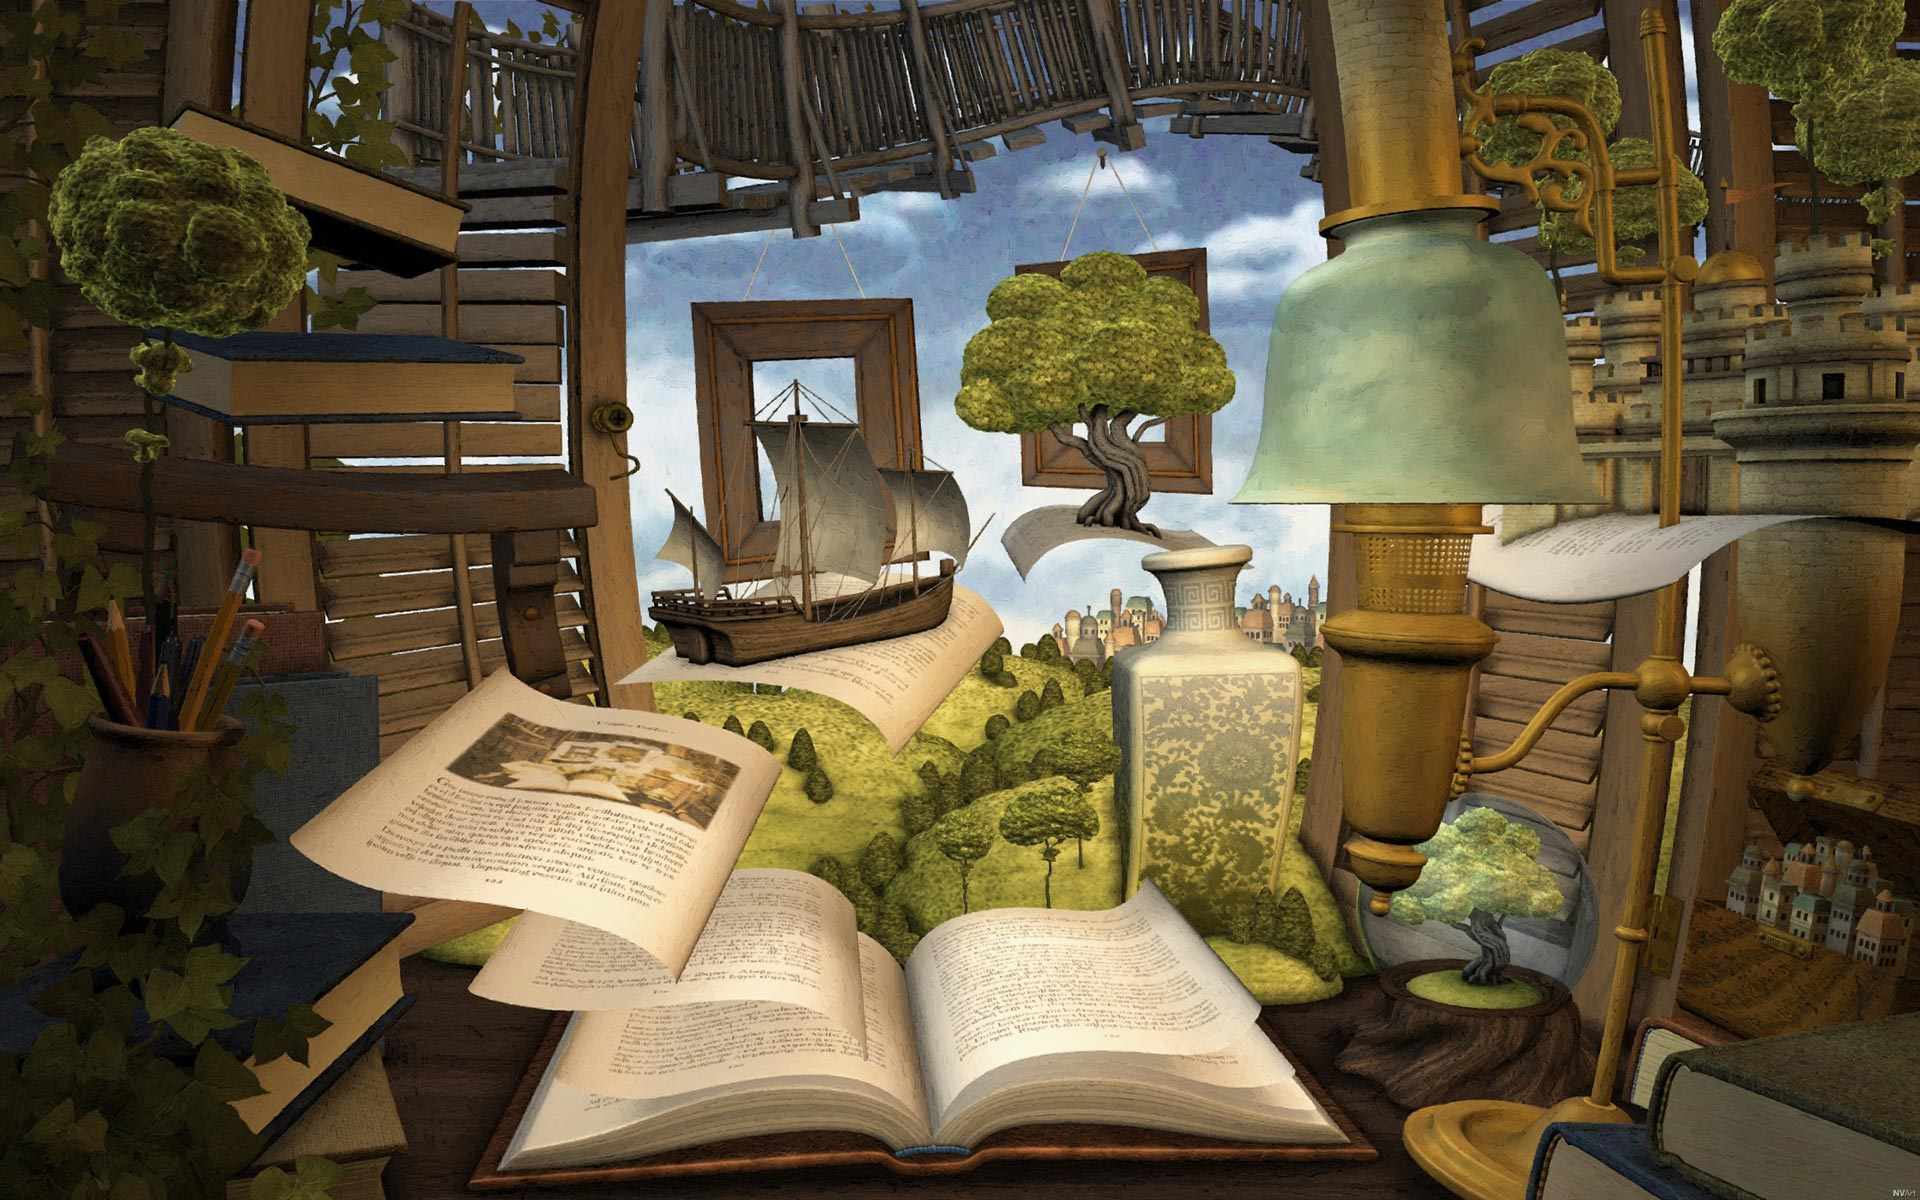 Lost in a Good Book Wallpaper s Orientation horizontal Dimensions 1920x1200